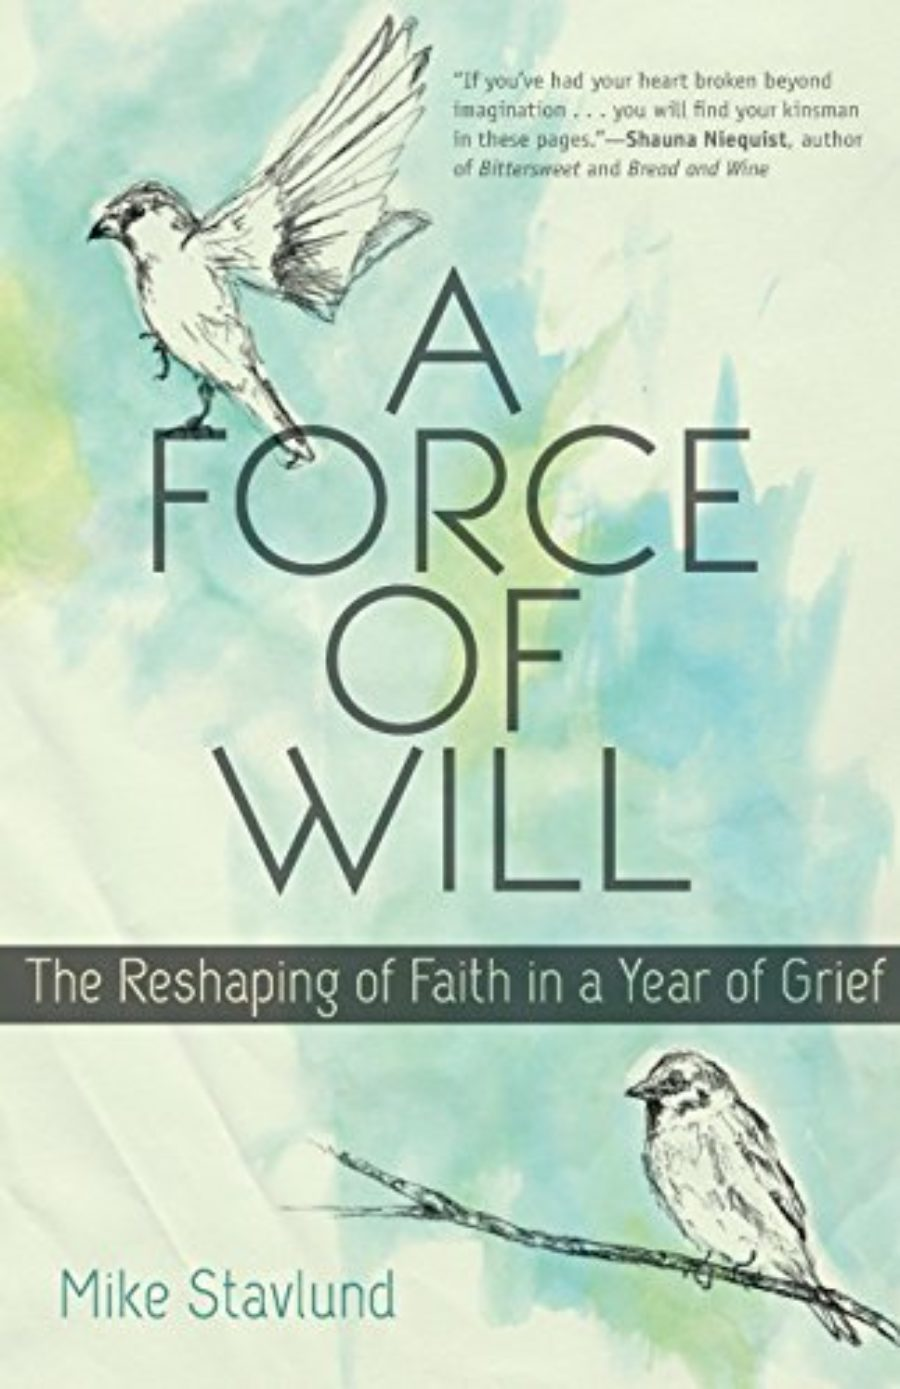 Cover of A Force of Will: The Reshaping of Faith in a Year of Grief